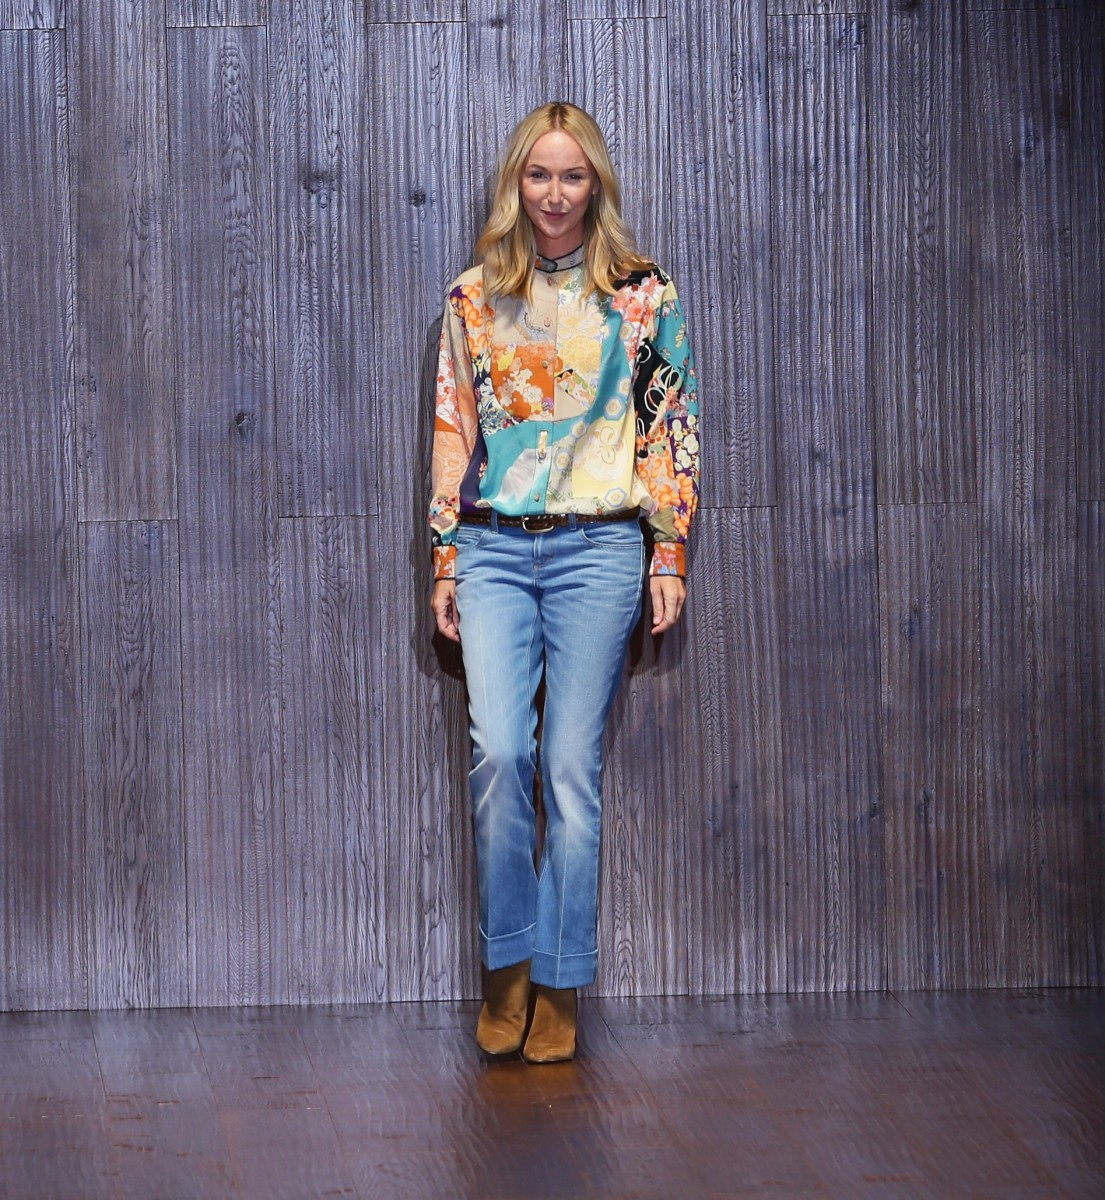 Giannini at Gucci's spring 2015 show in September. Photo: Vittorio Zunino Celotto/Getty Images